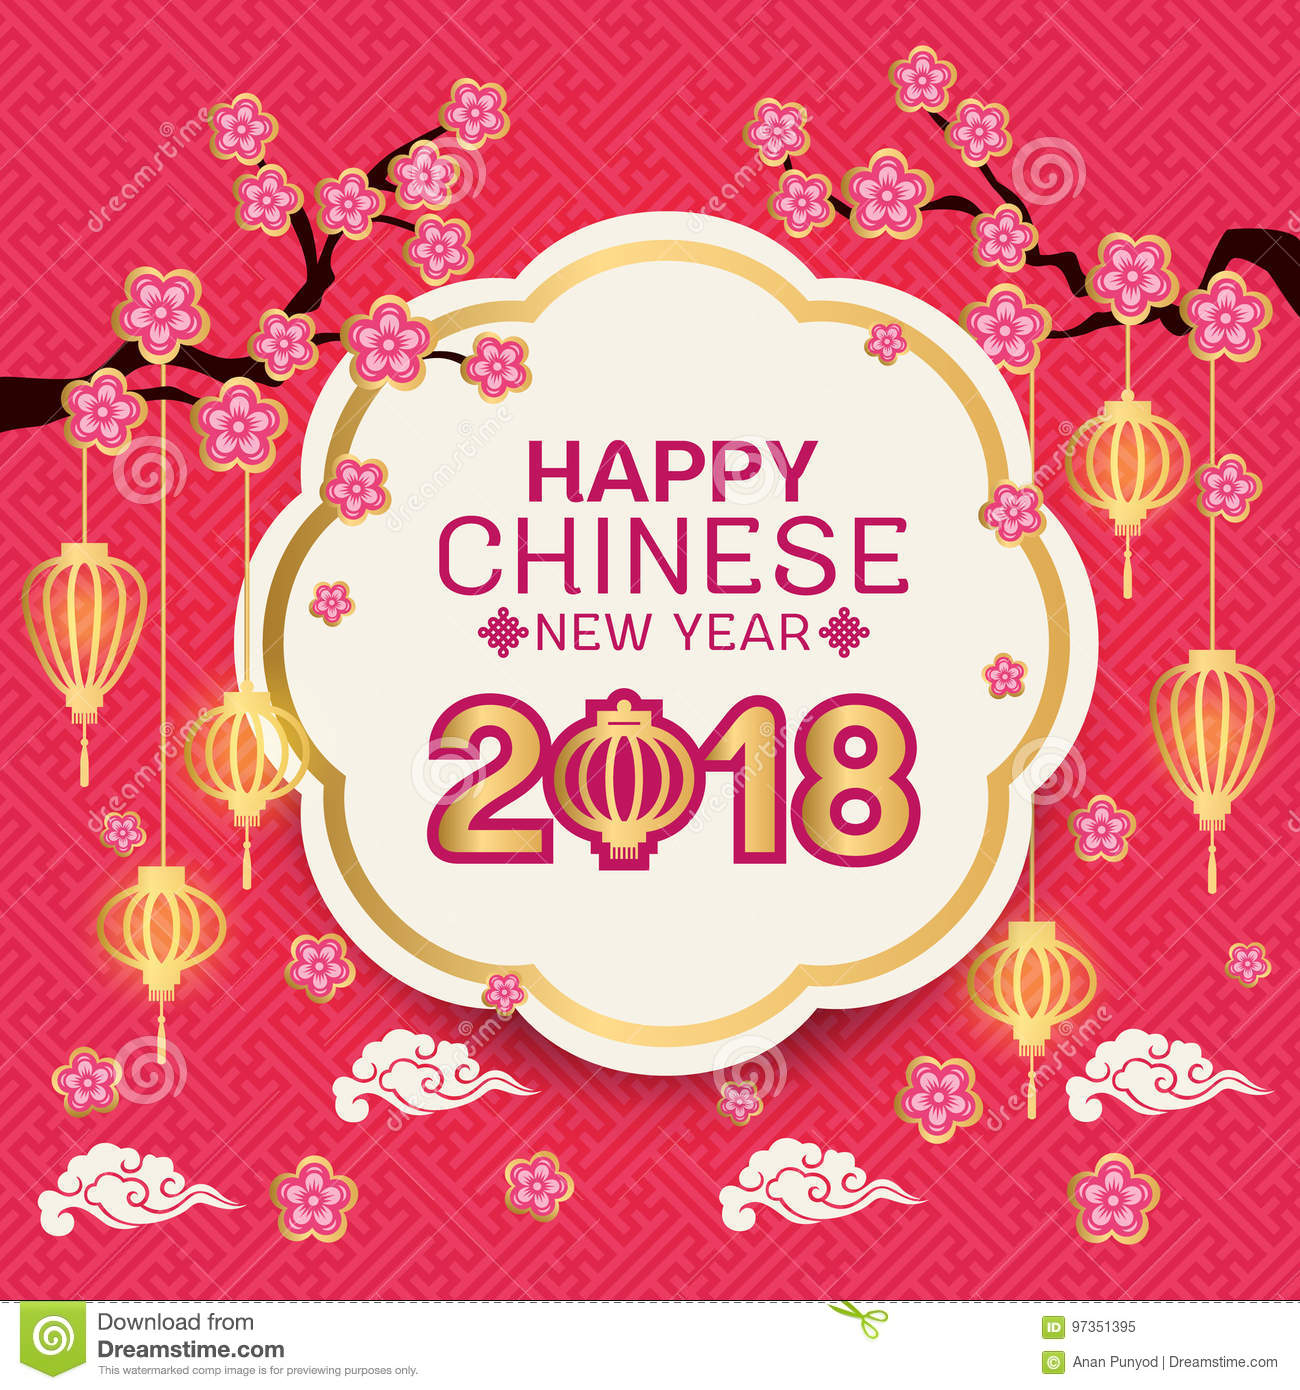 happy chinese new year 2018 text on gold border white circle banner and pink flowers branch